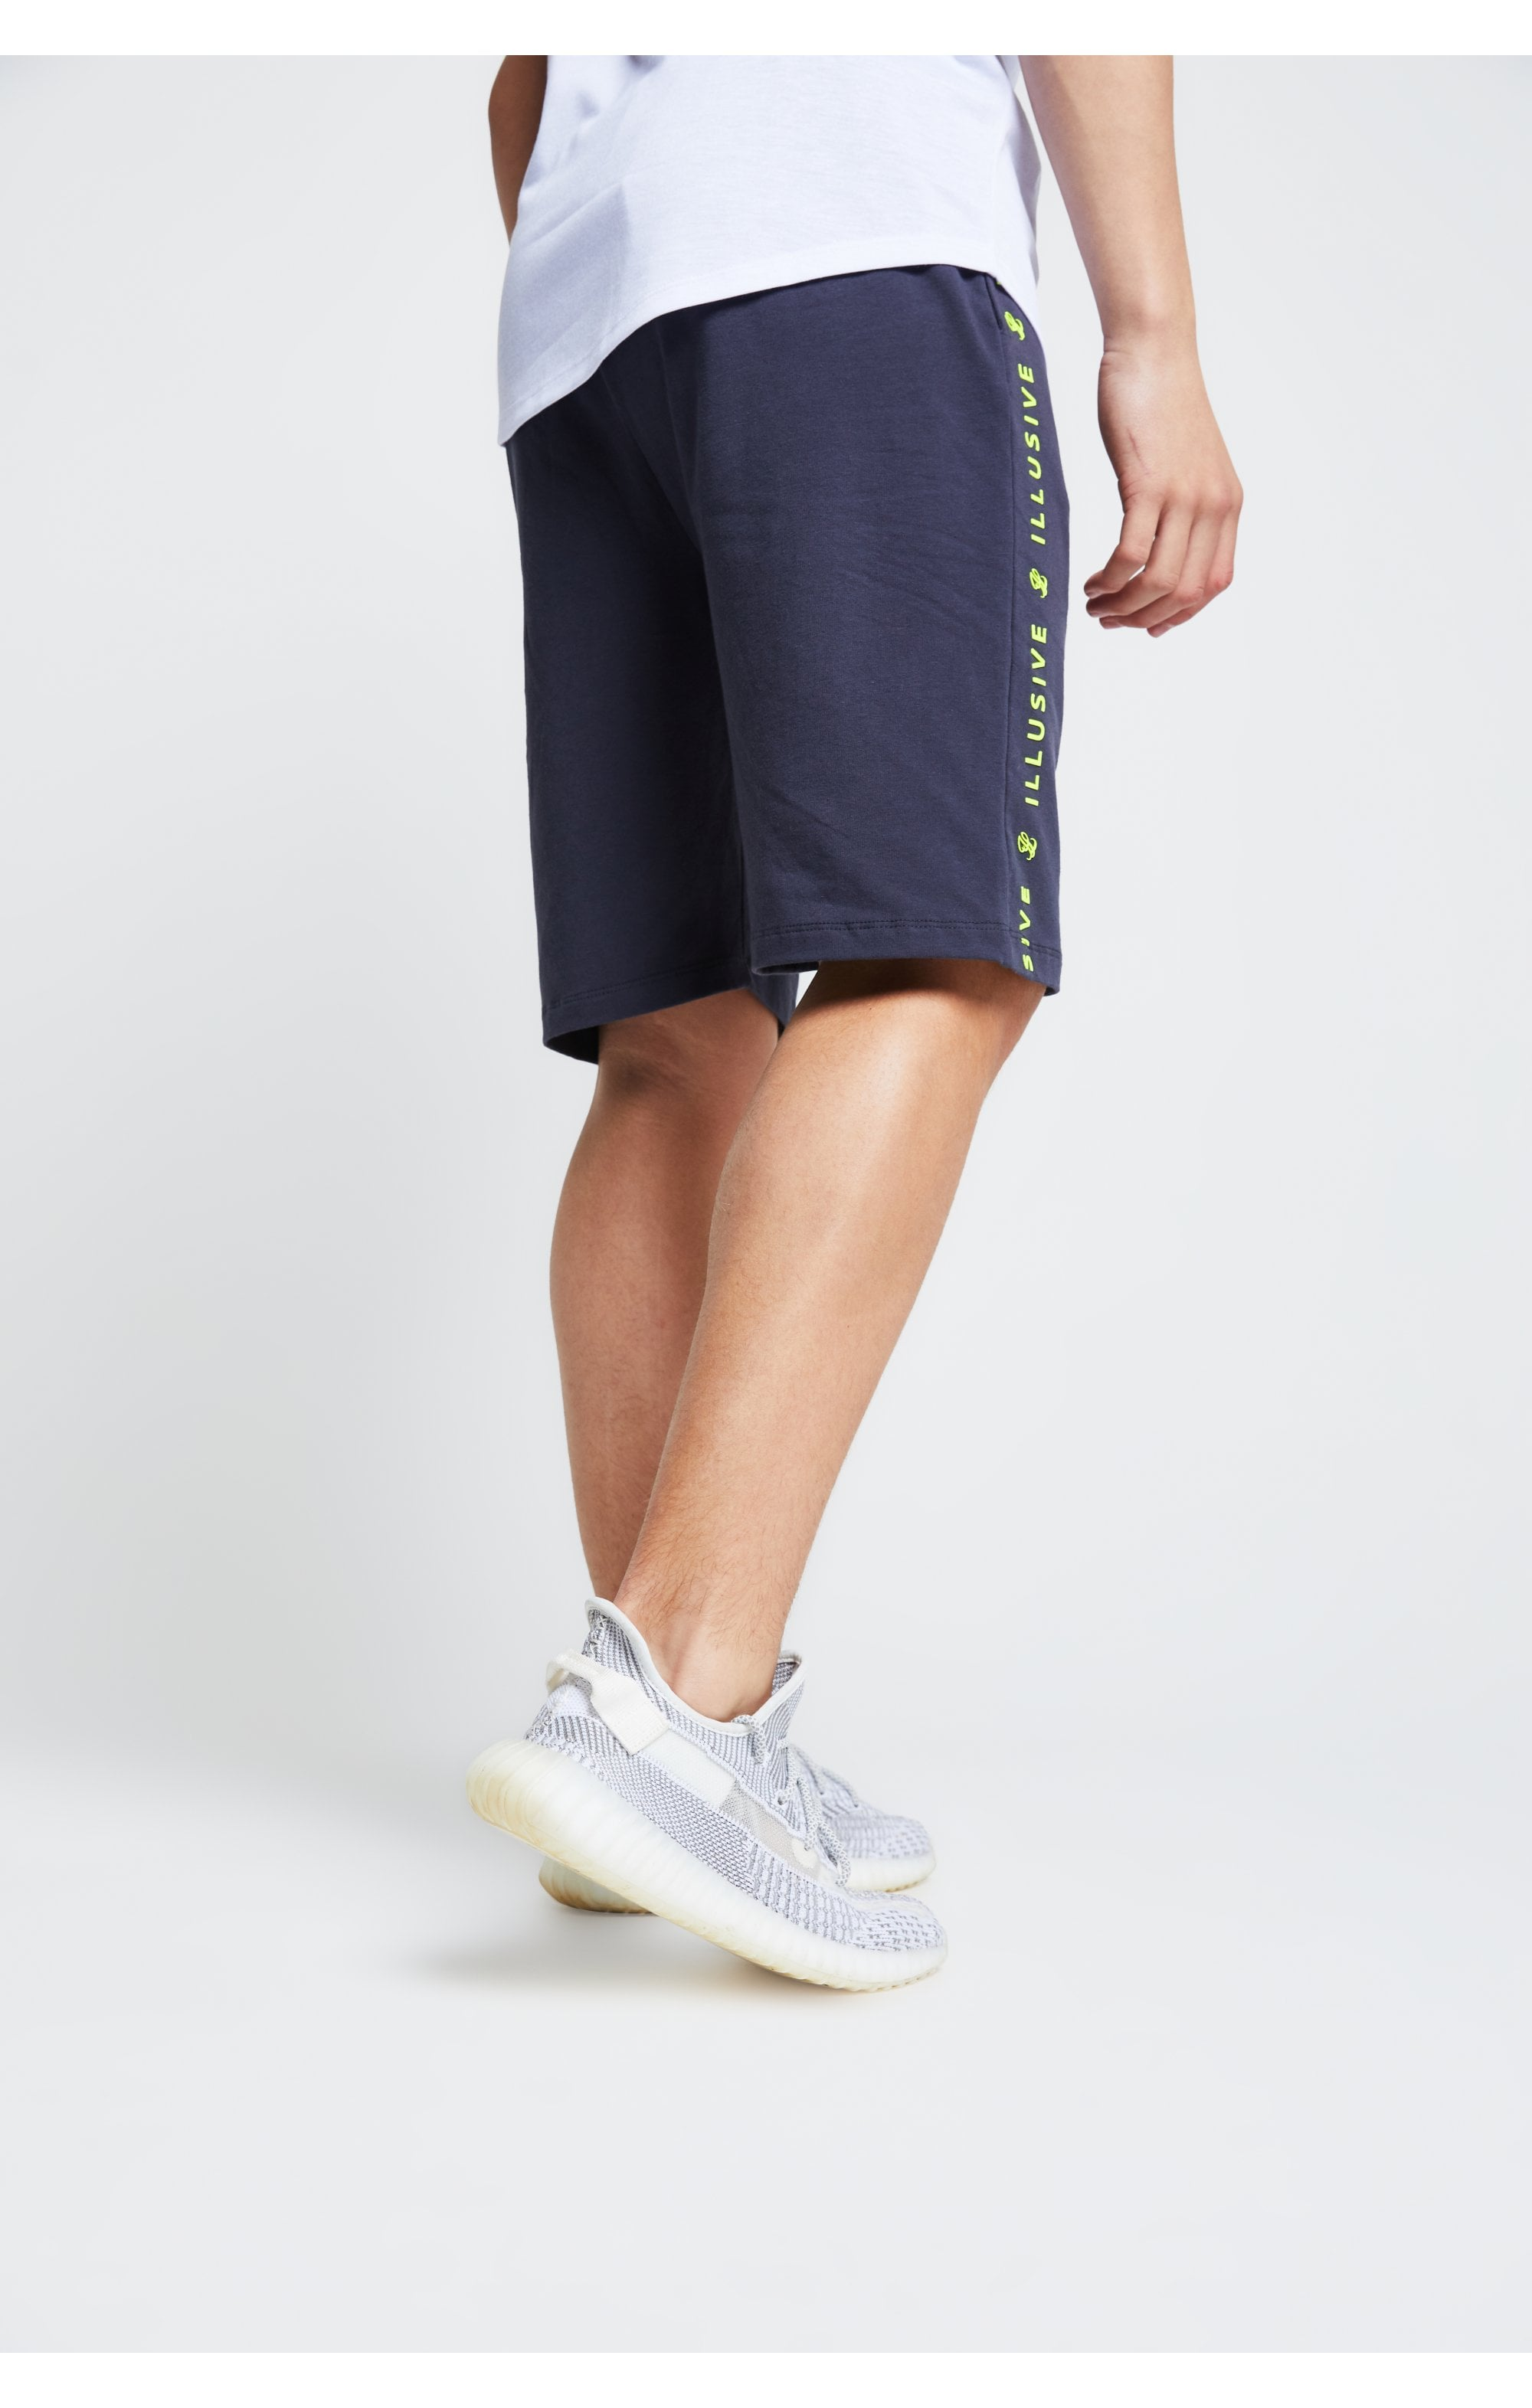 Illusive London Jersey Shorts - Grey Neon Yellow (2)